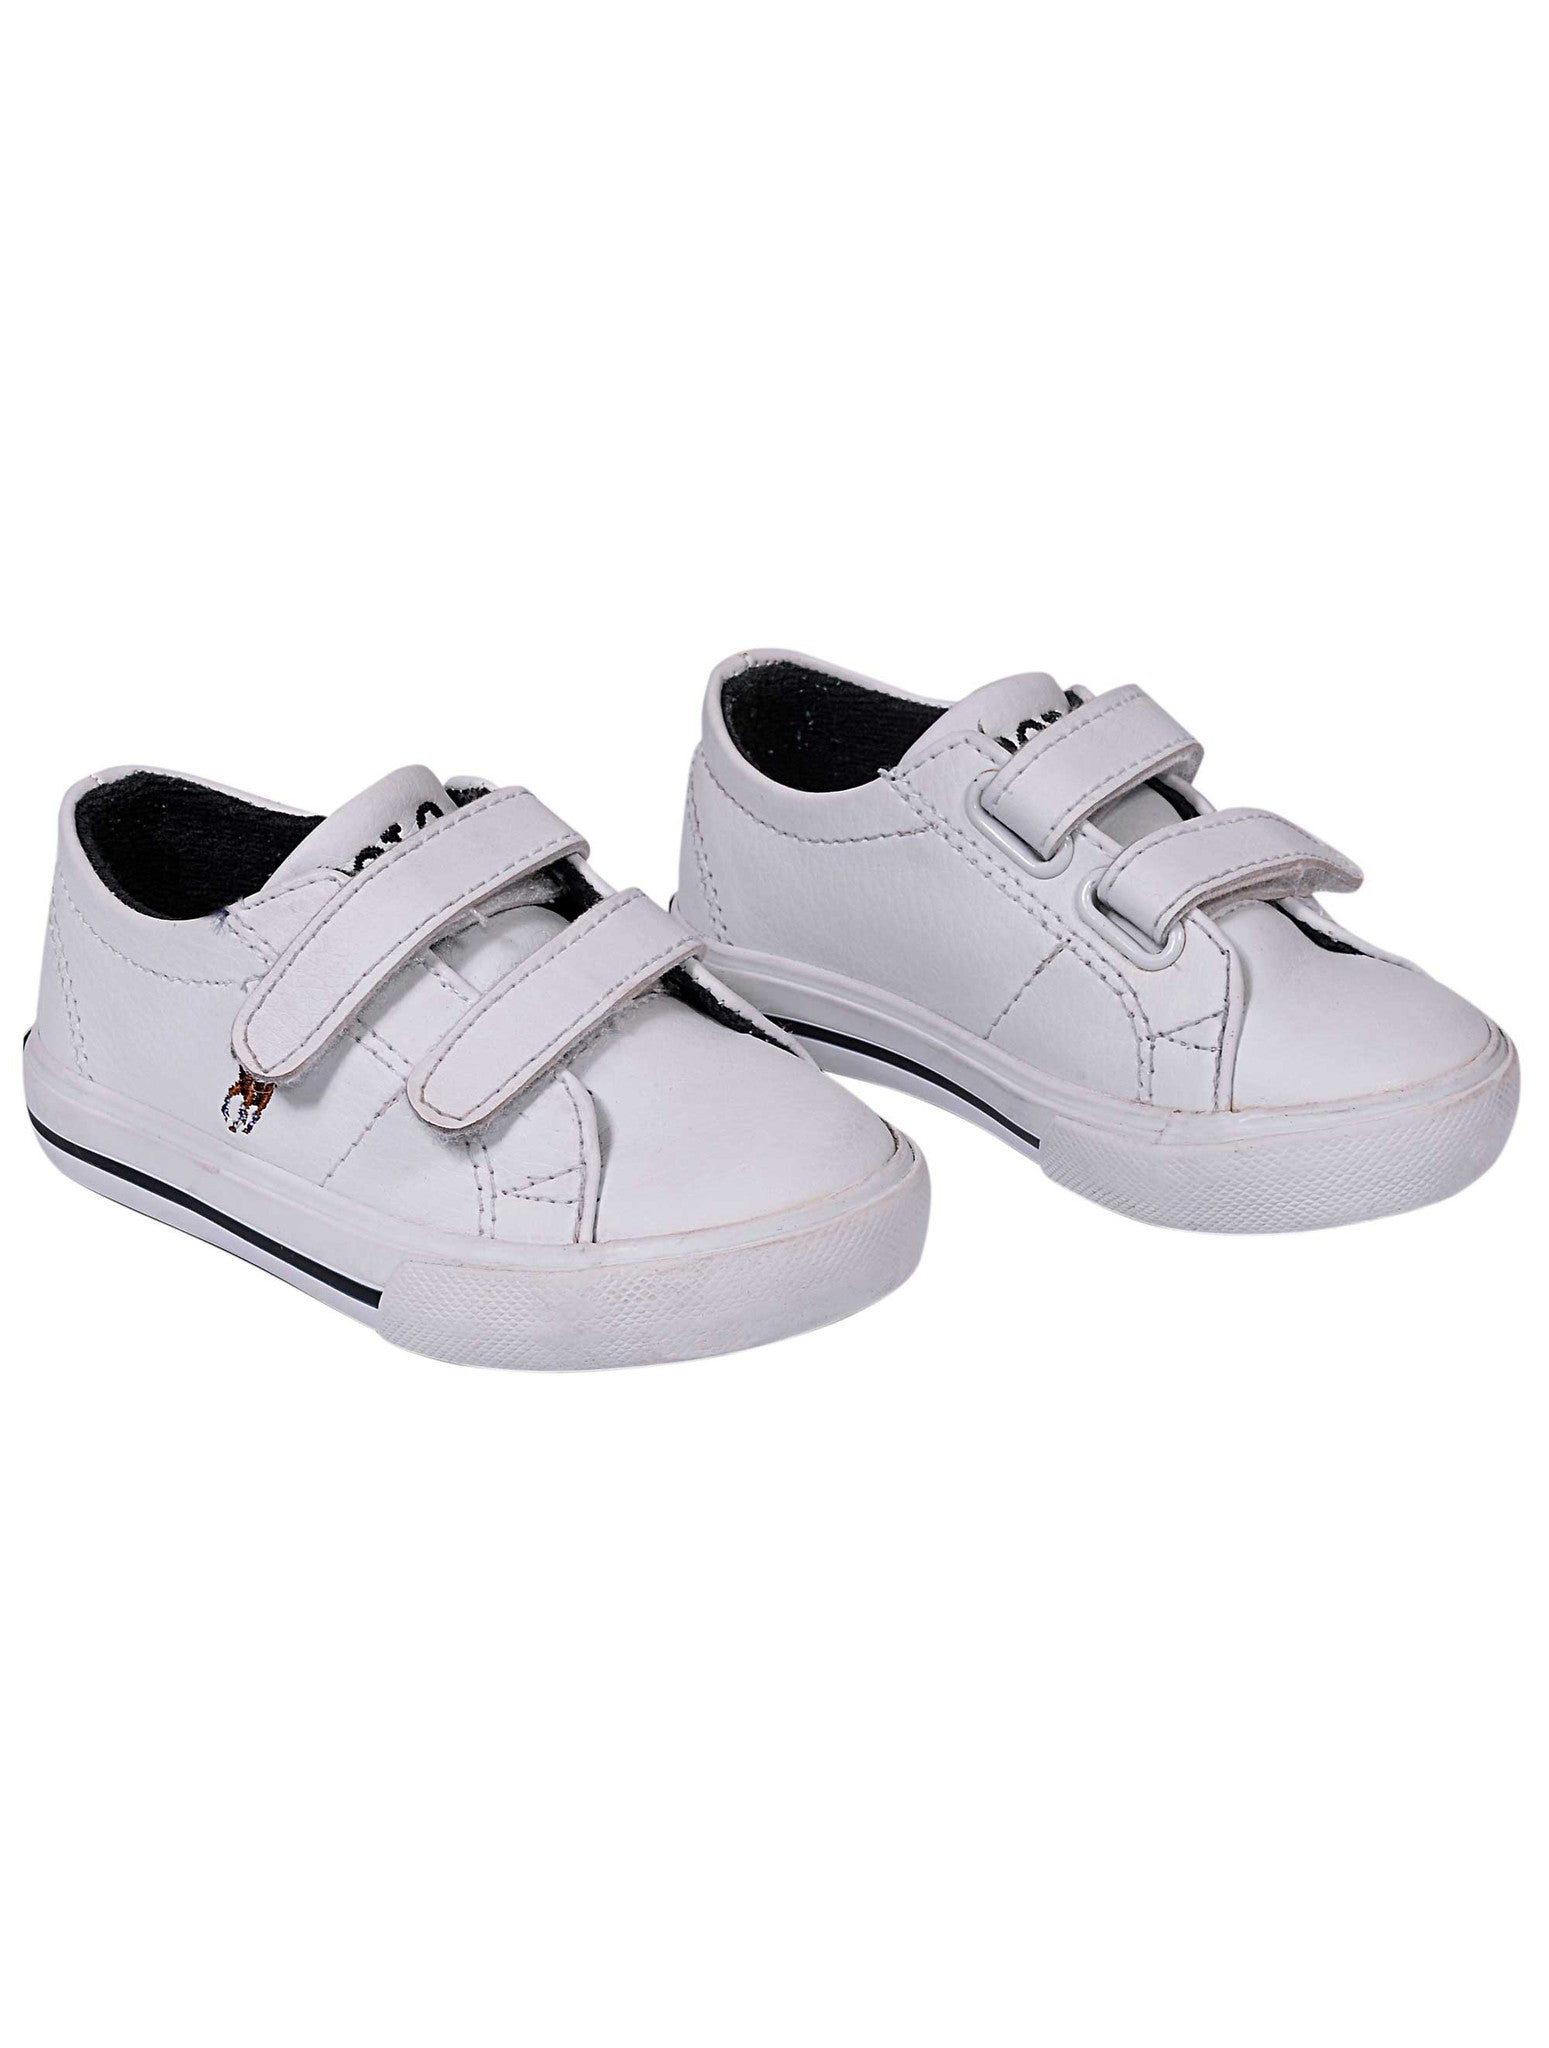 VELCRO STRAP TRAINER SHOES